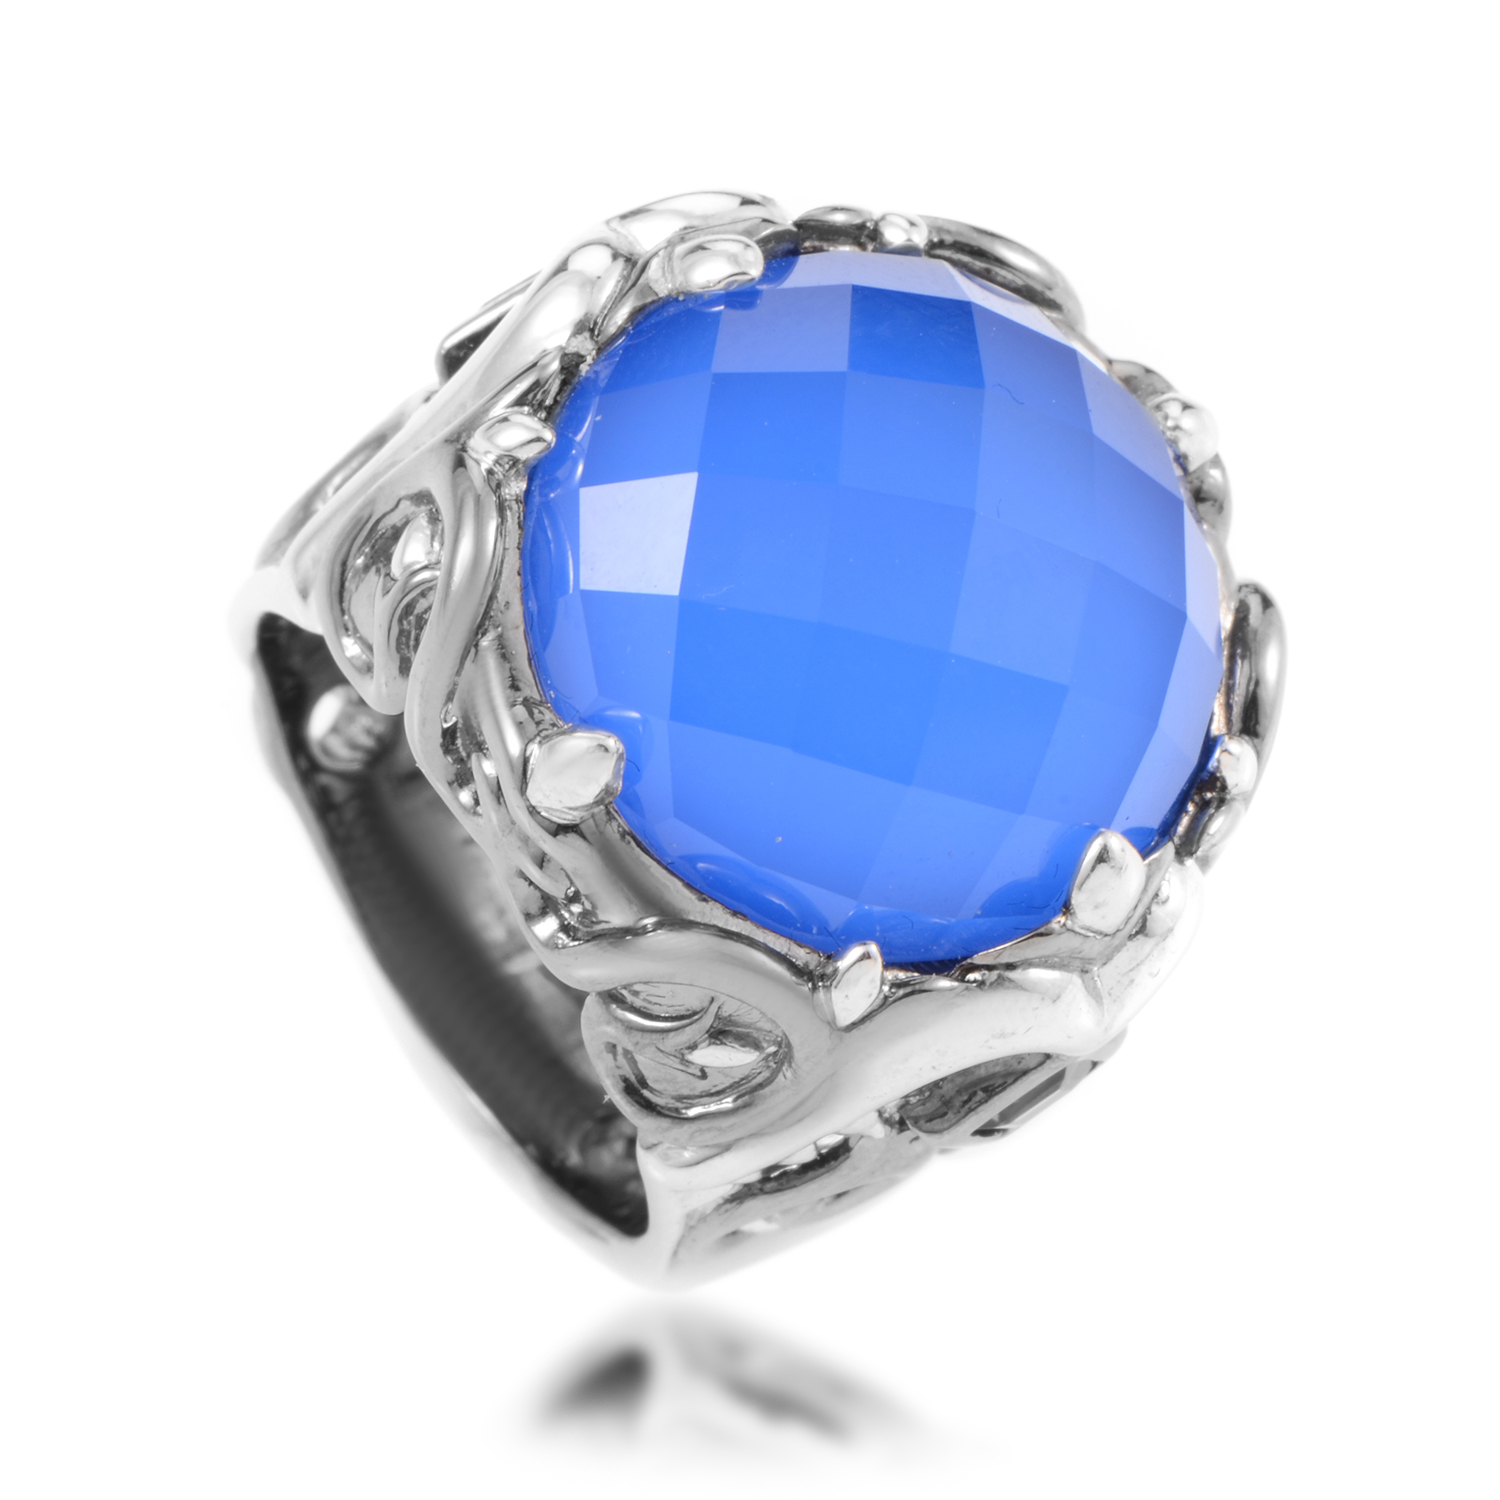 Les Dents de la Mer Sterling Silver Blue Gemstone Cocktail Ring